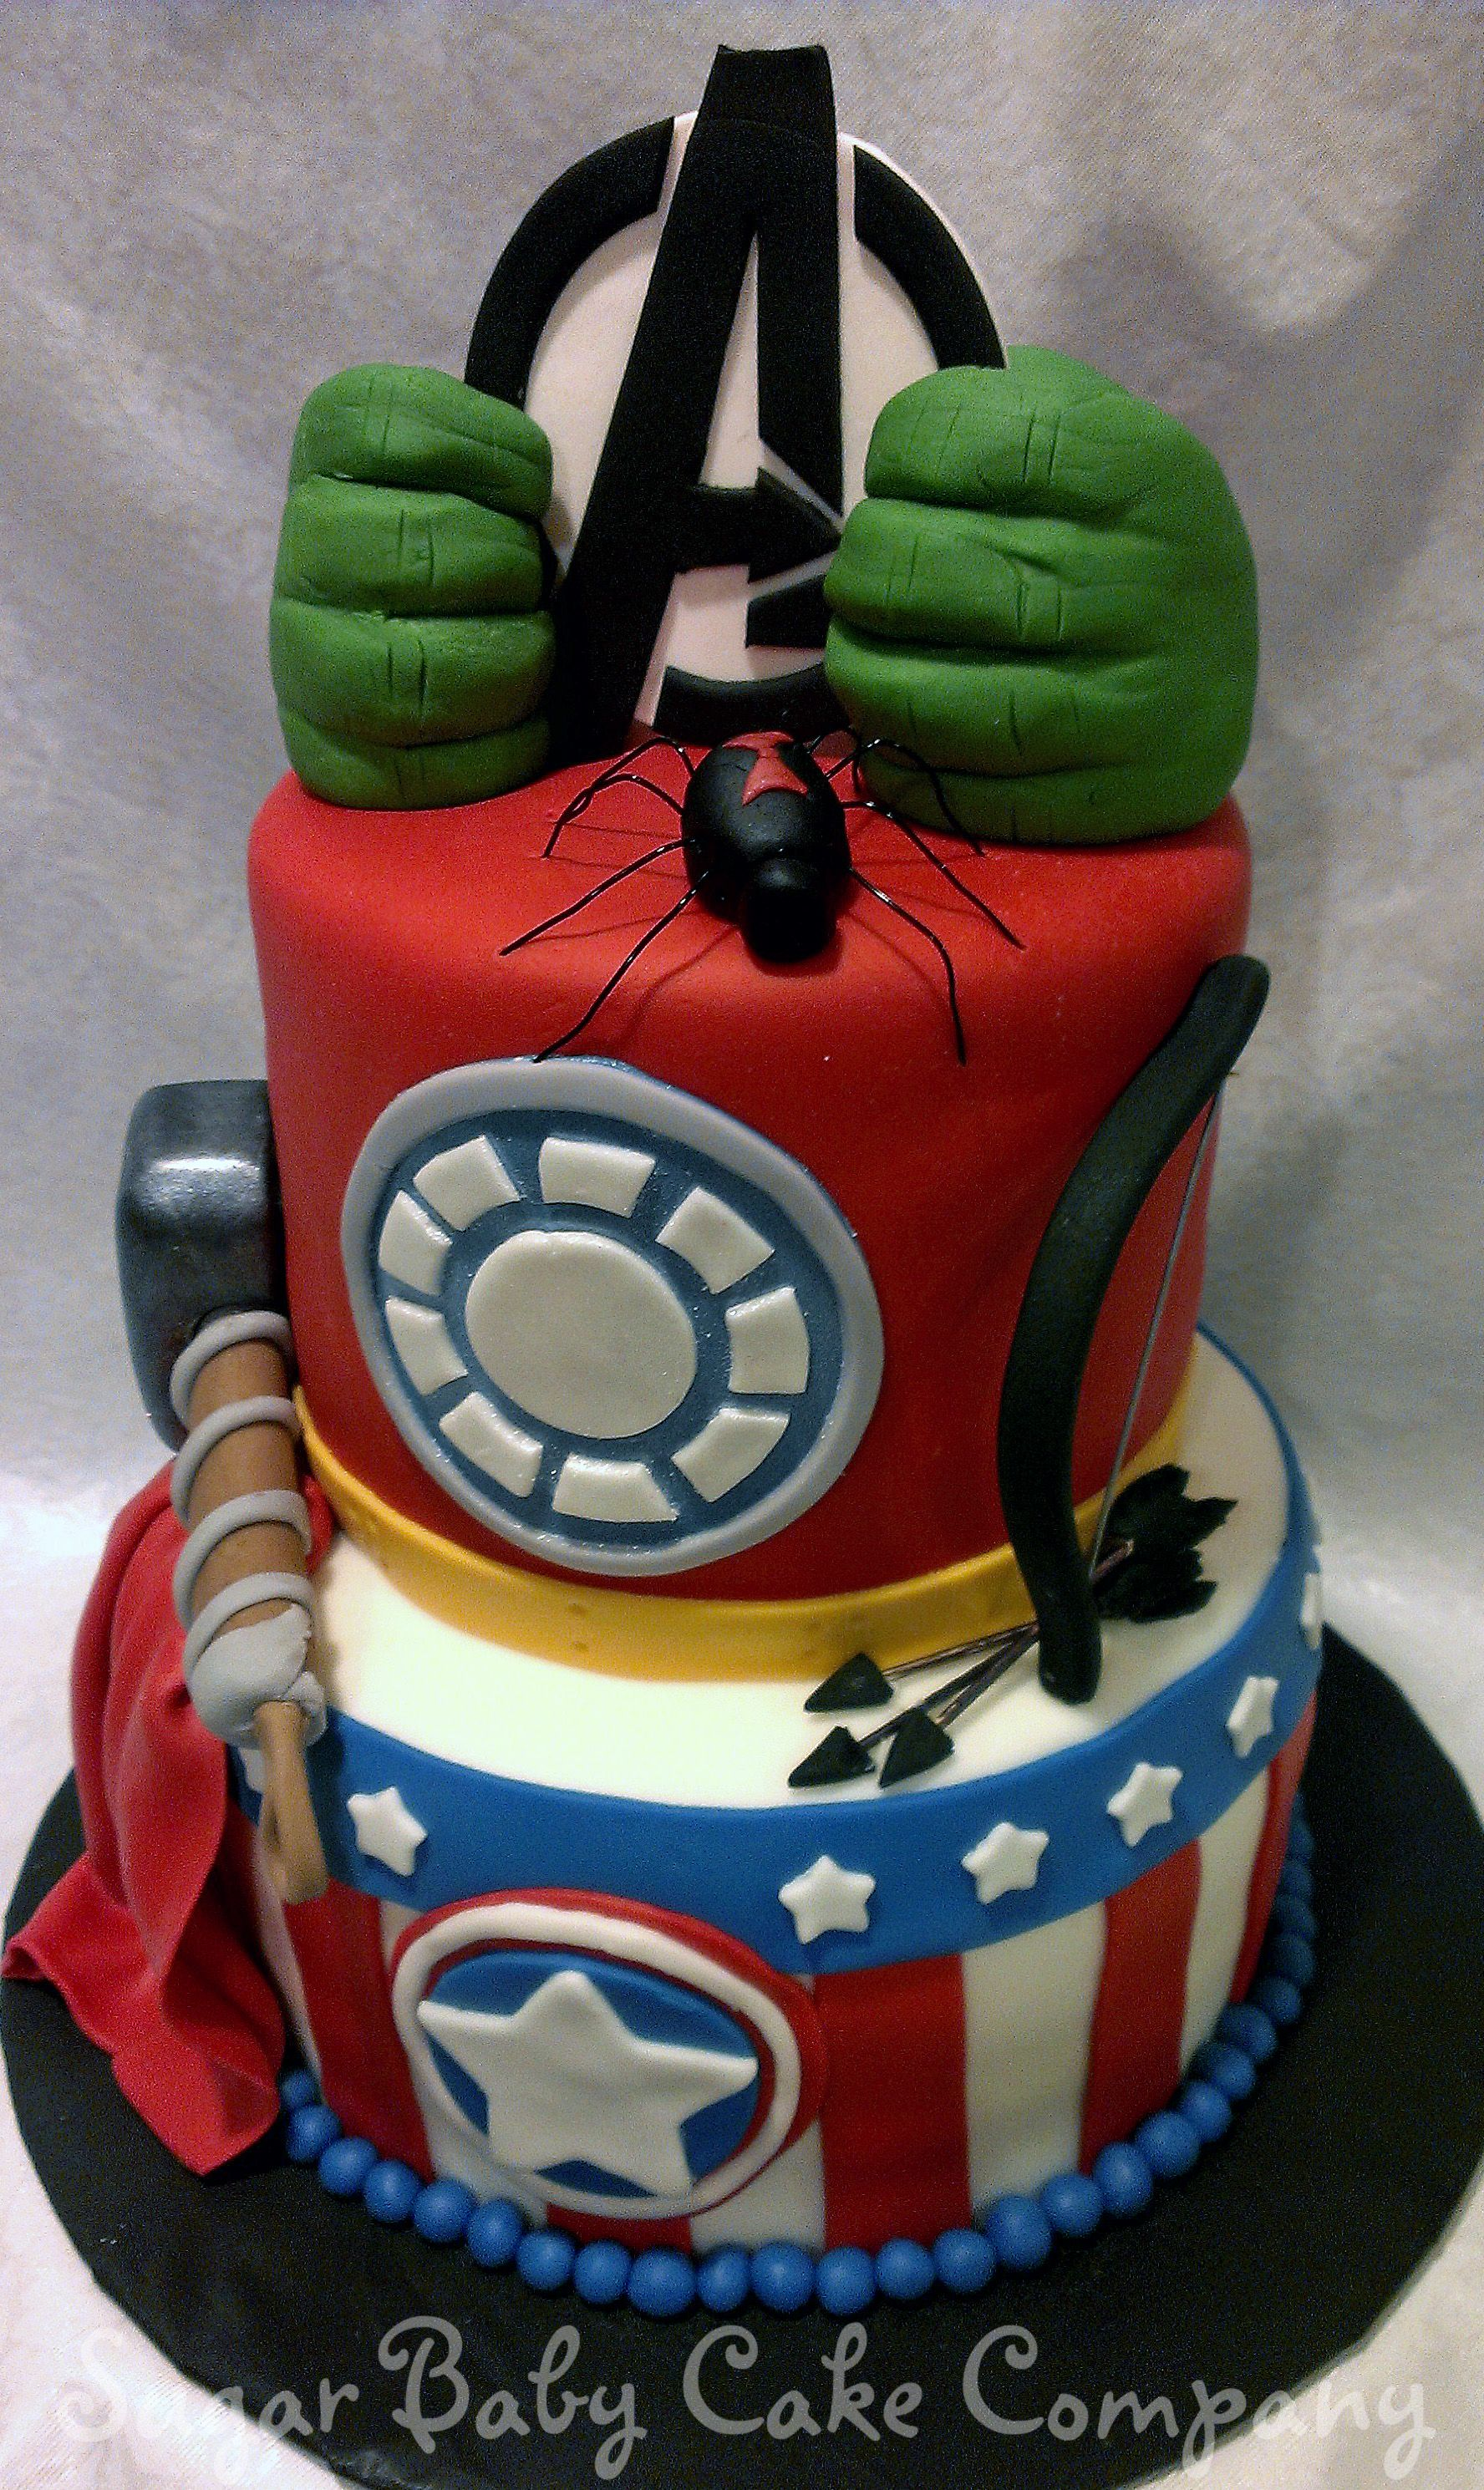 Avengers Birthday Cake Design : Avengers Birthday Cakes on Pinterest